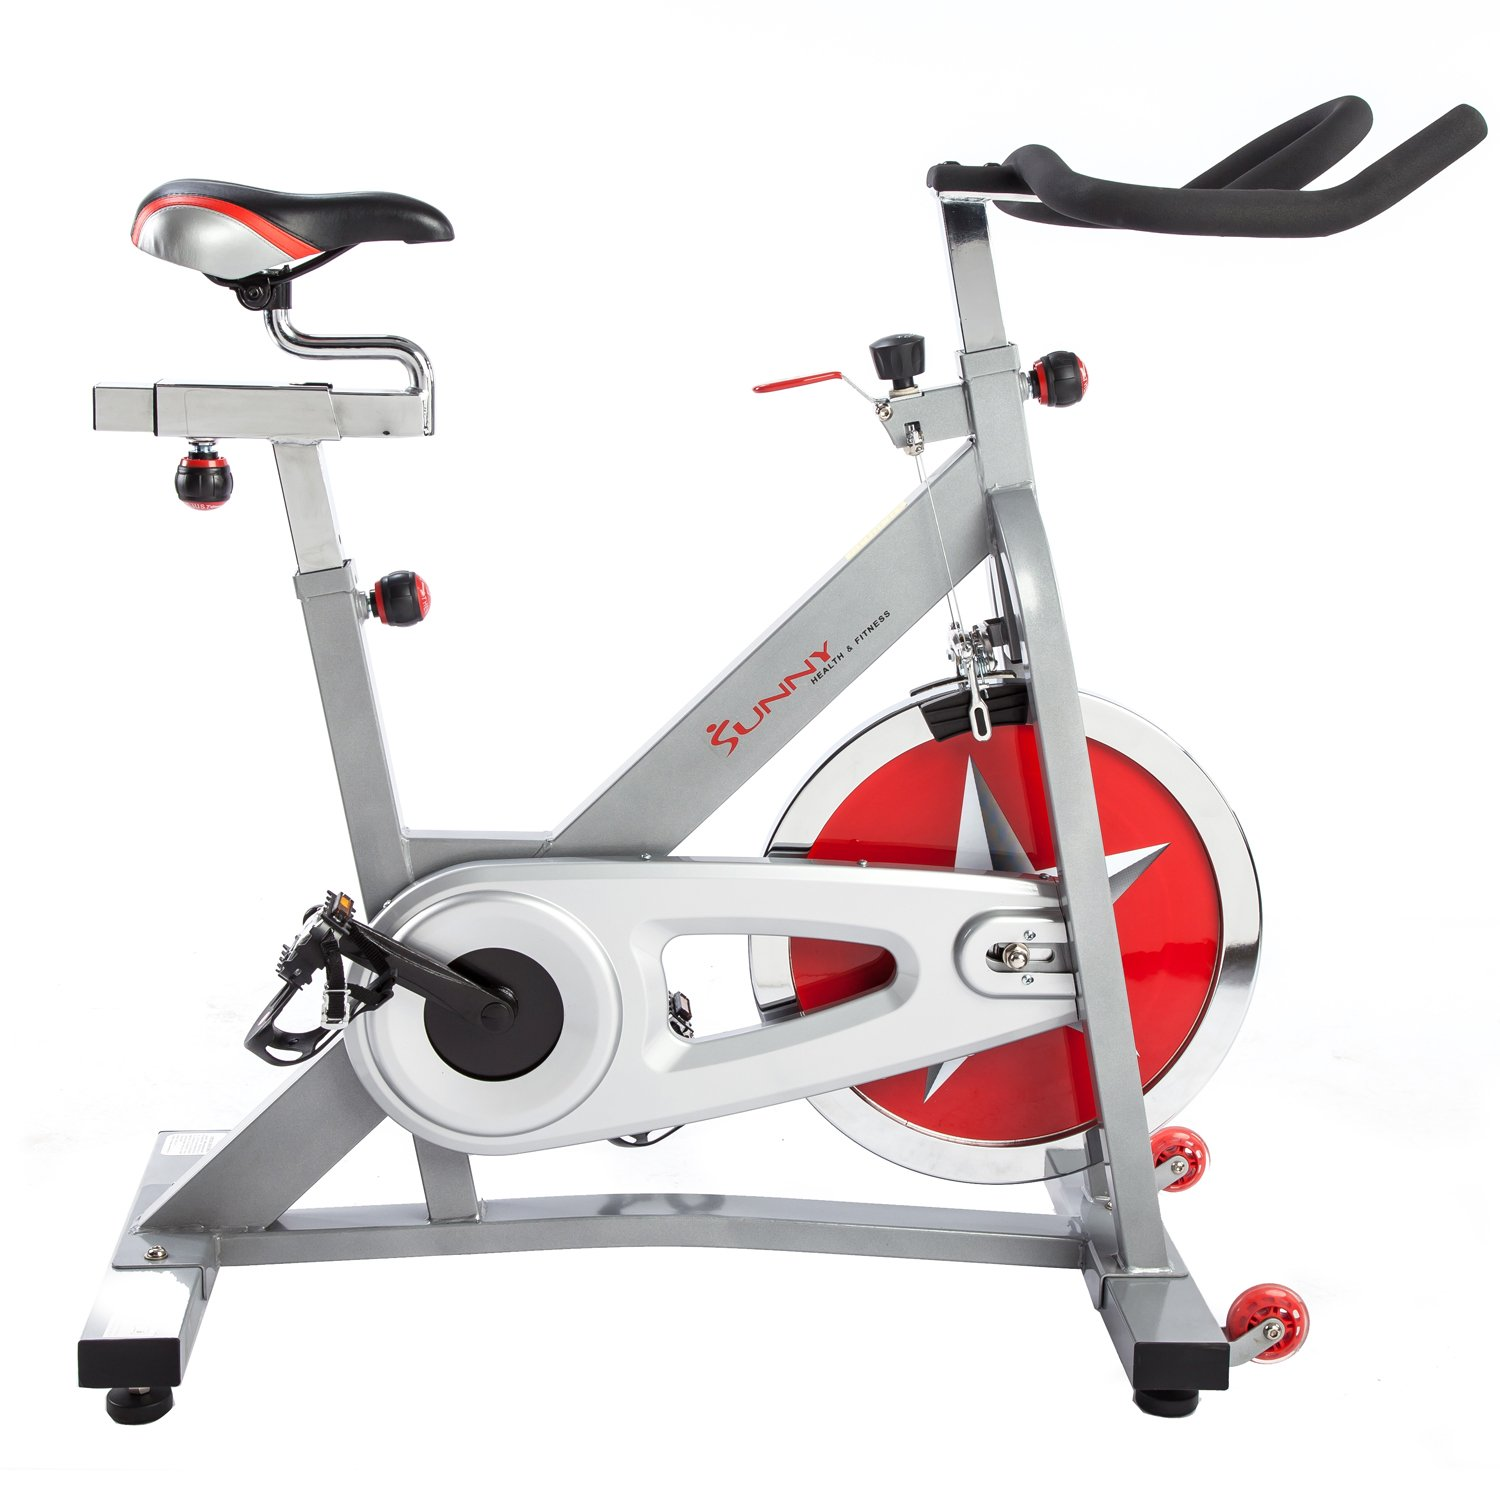 Bike Exercises Without A Bike Fitness Pro Indoor Cycling